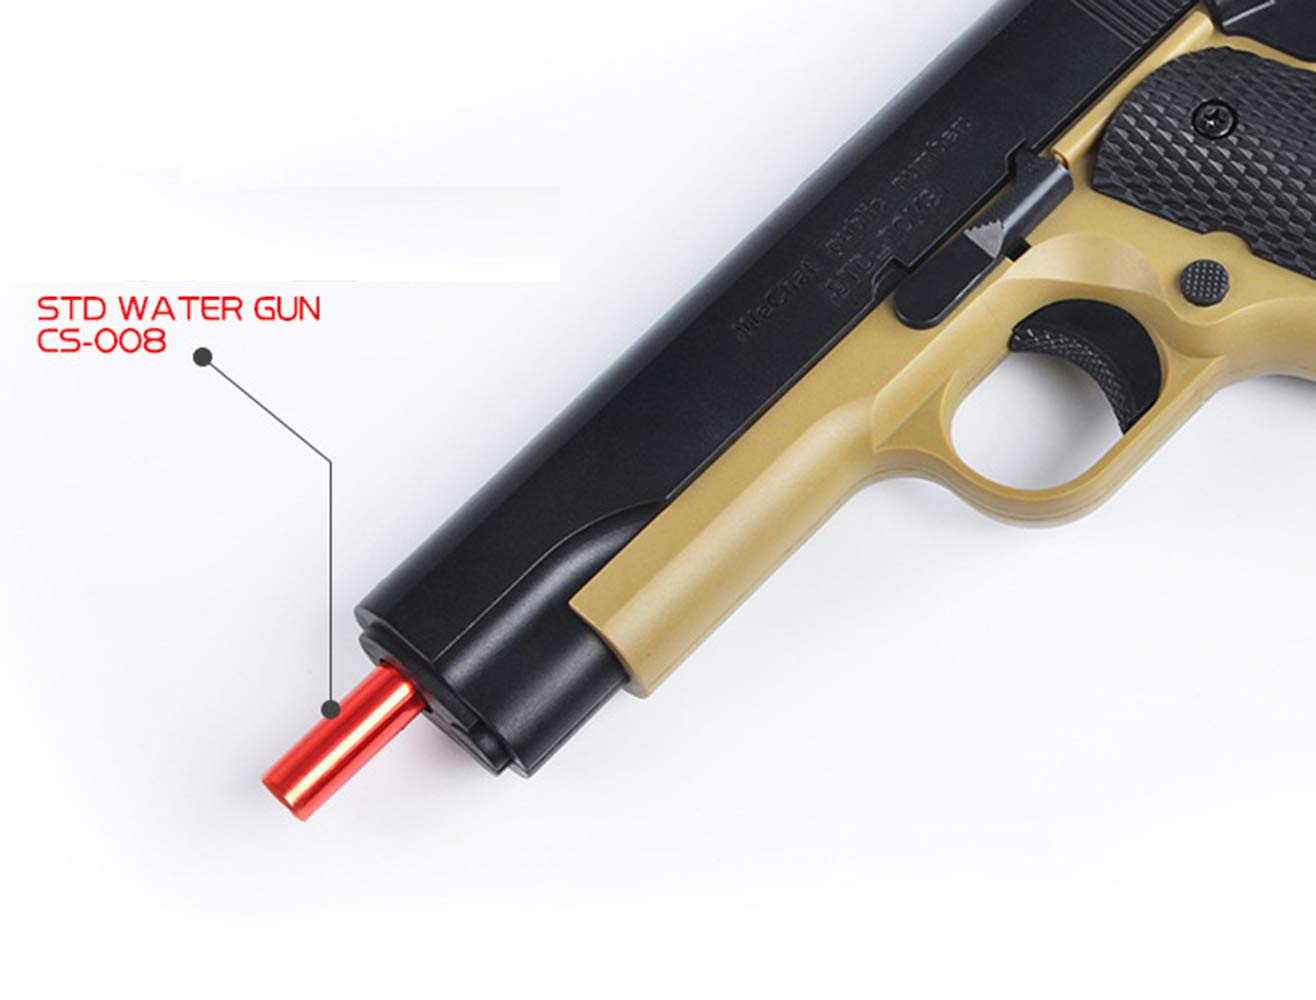 SHUNDATONG Toy Gun New STD 1911 Manual Toy Gun Outdoor